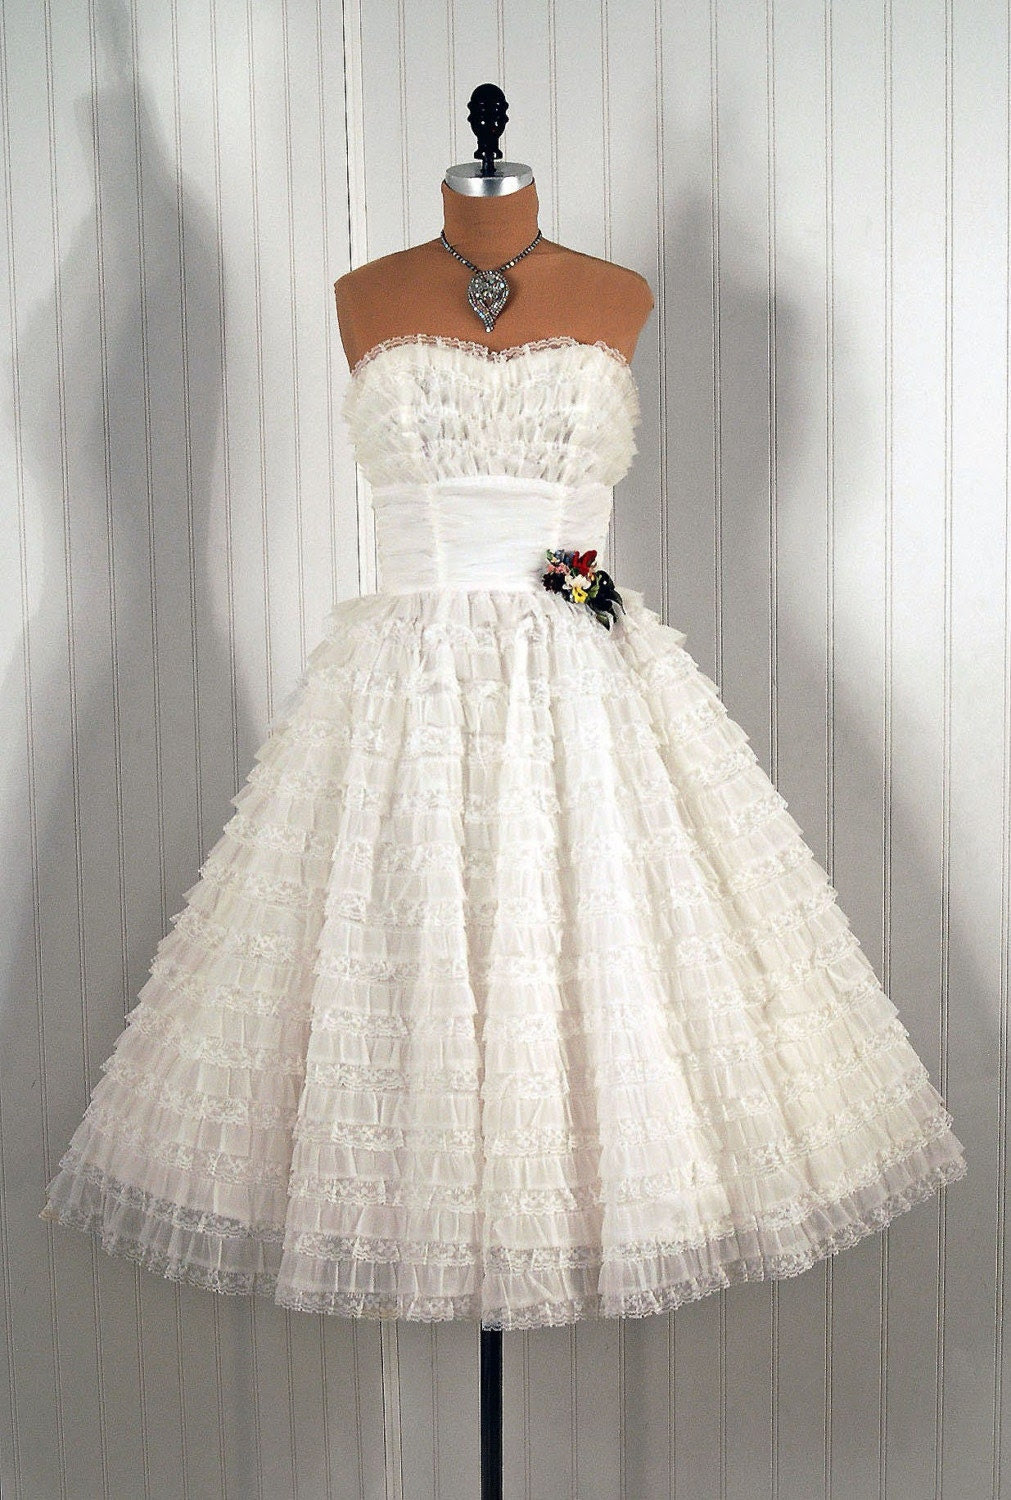 1950's Vintage Strapless White-Ruffle Tiered Chiffon and Lace Applique Couture Princess Party Wedding Dress